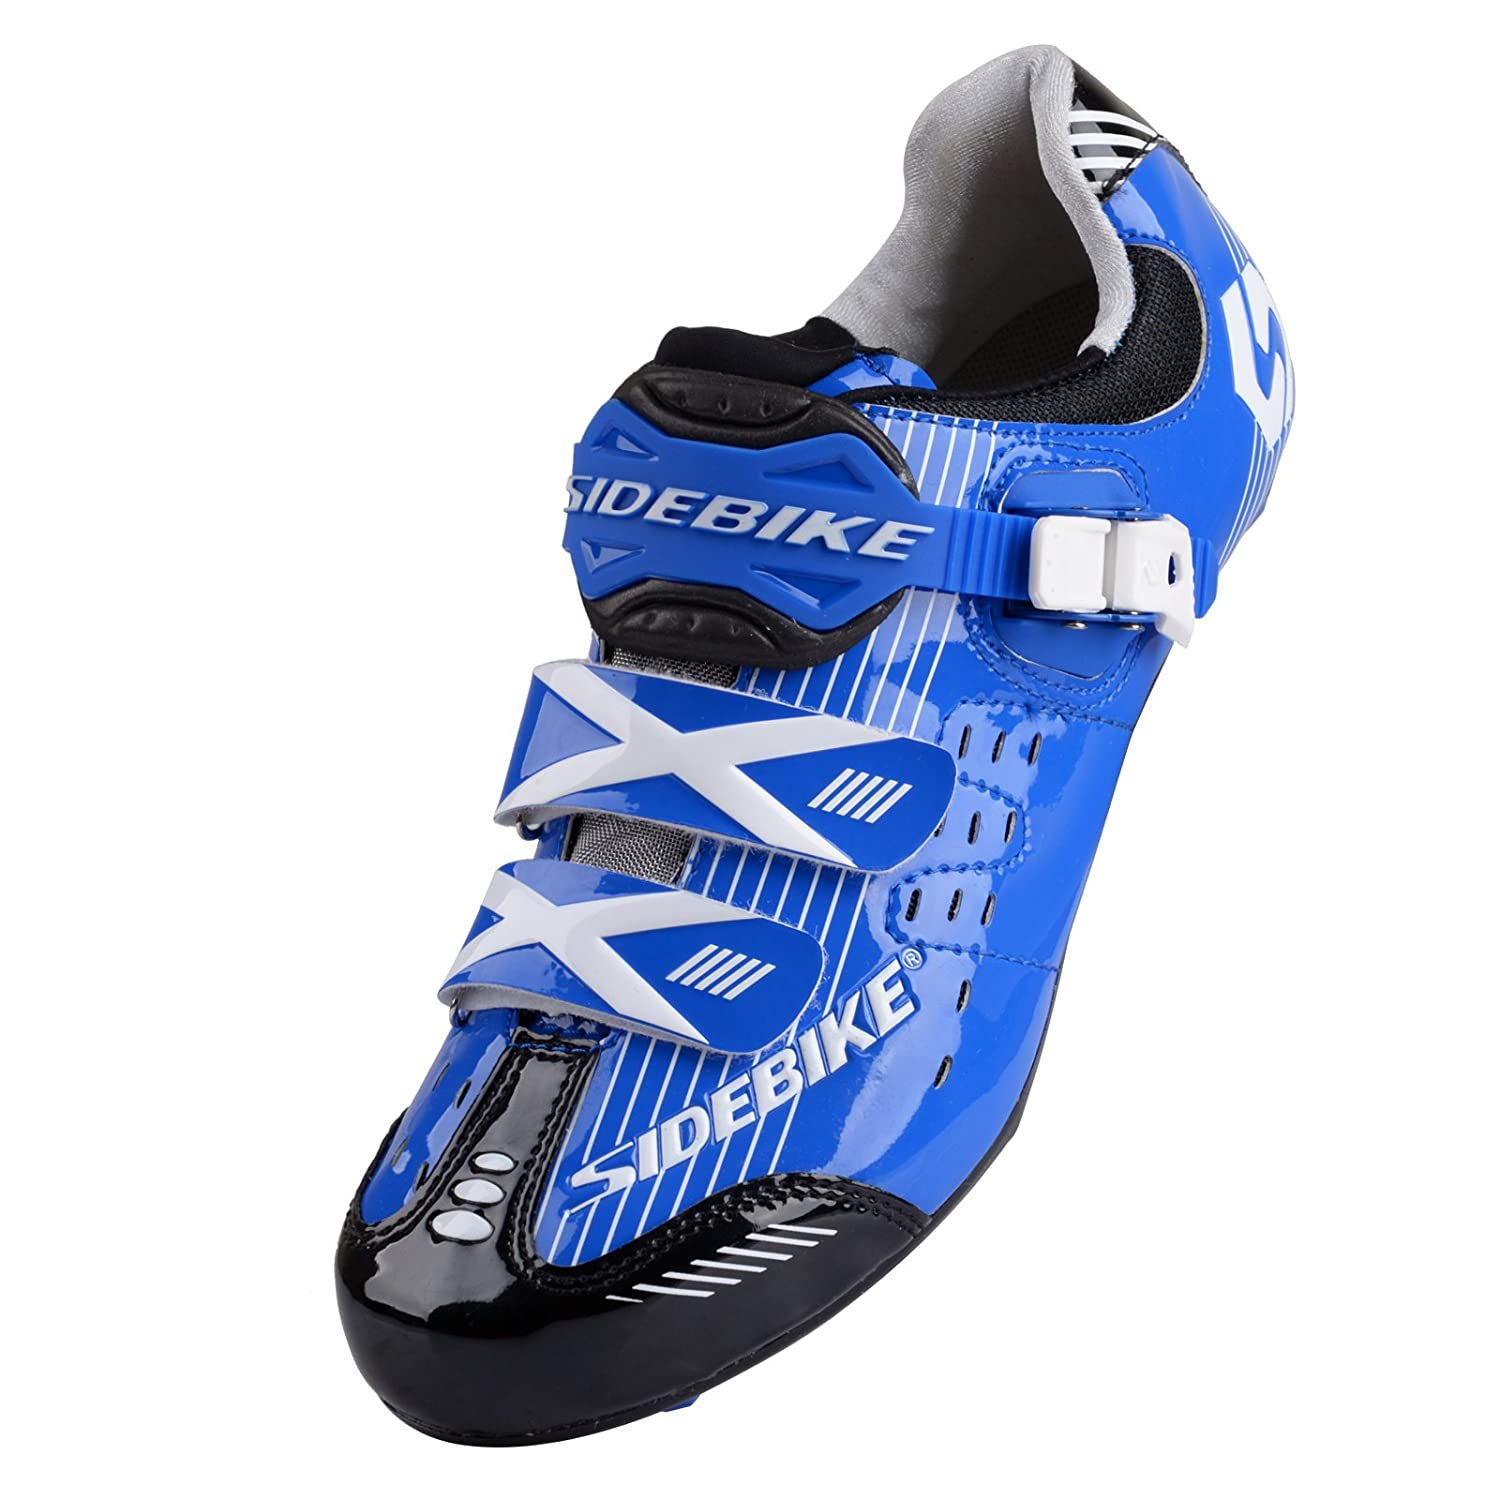 bluee for Road Smartodoors Sidebike SD002 Men's All-Around Road Cycling shoes with Carbon Soles